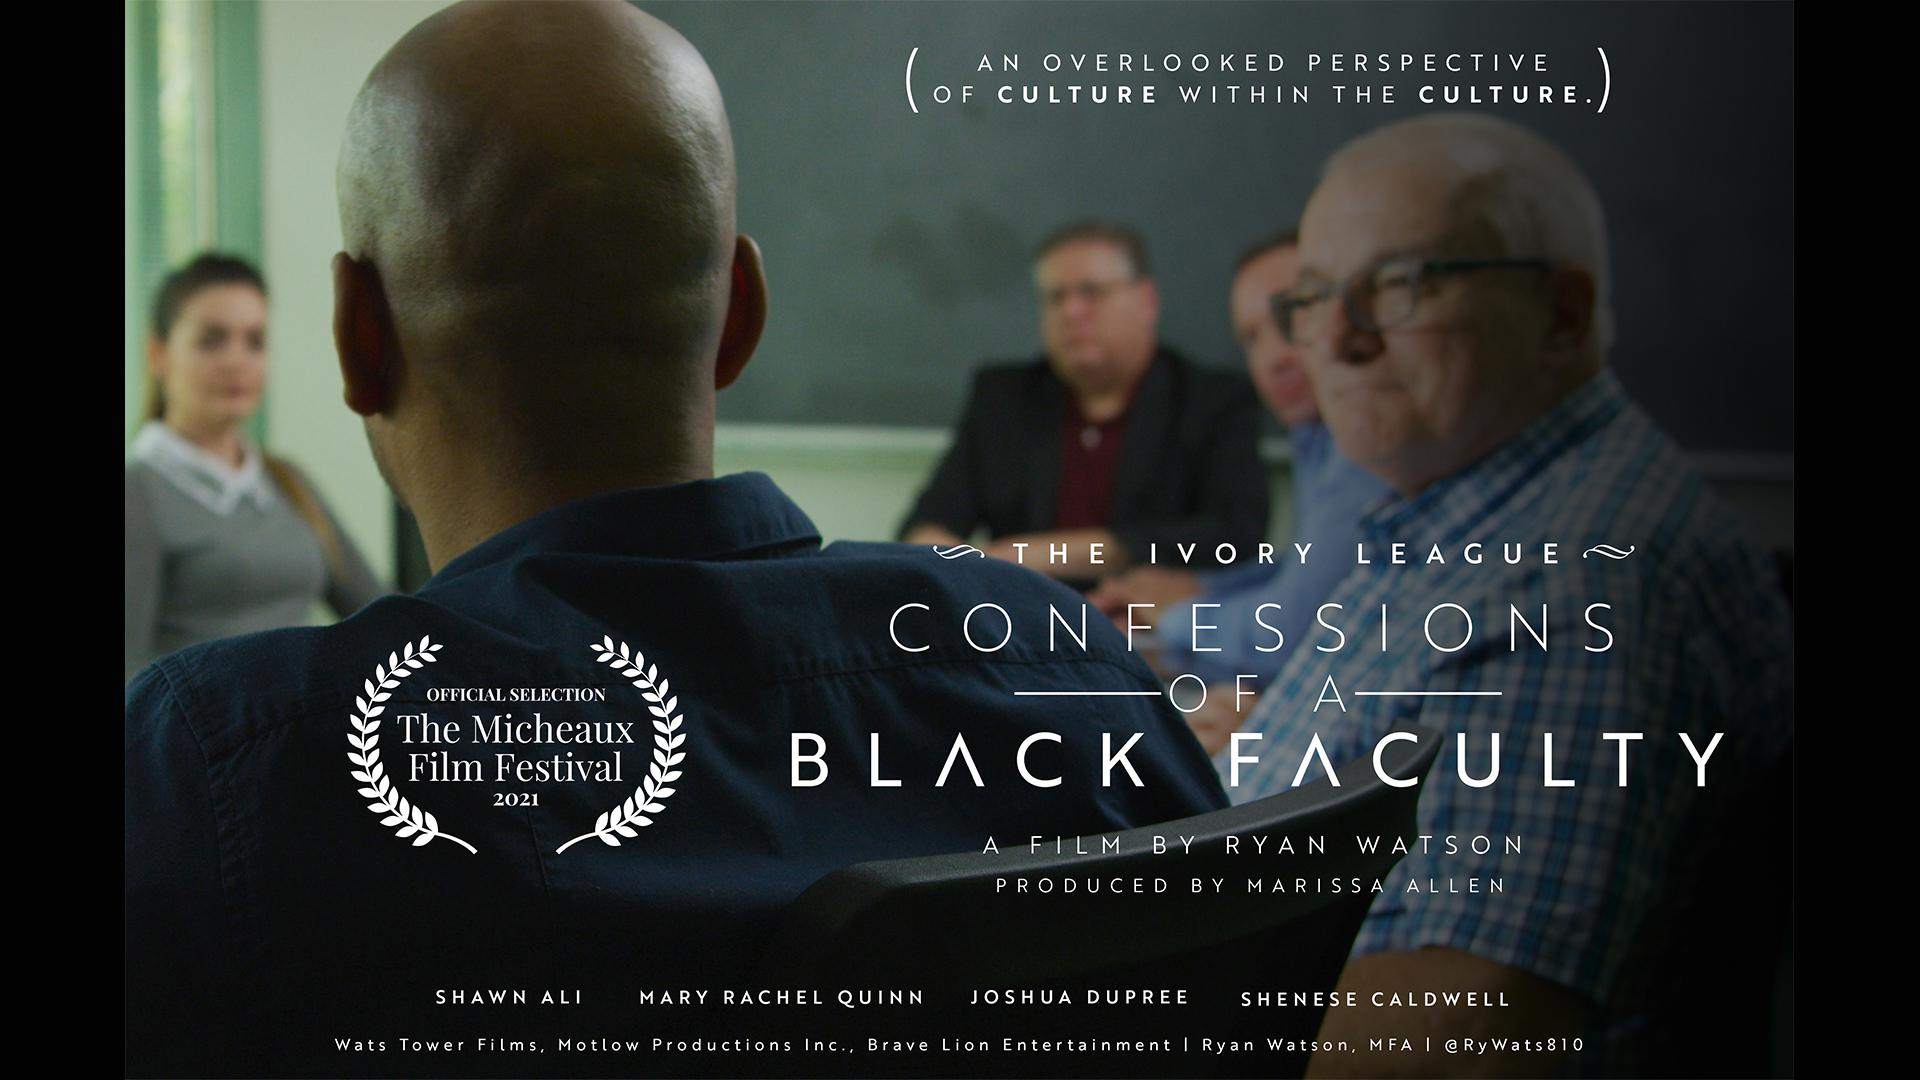 The Ivory League: Confessions of a Black Faculty